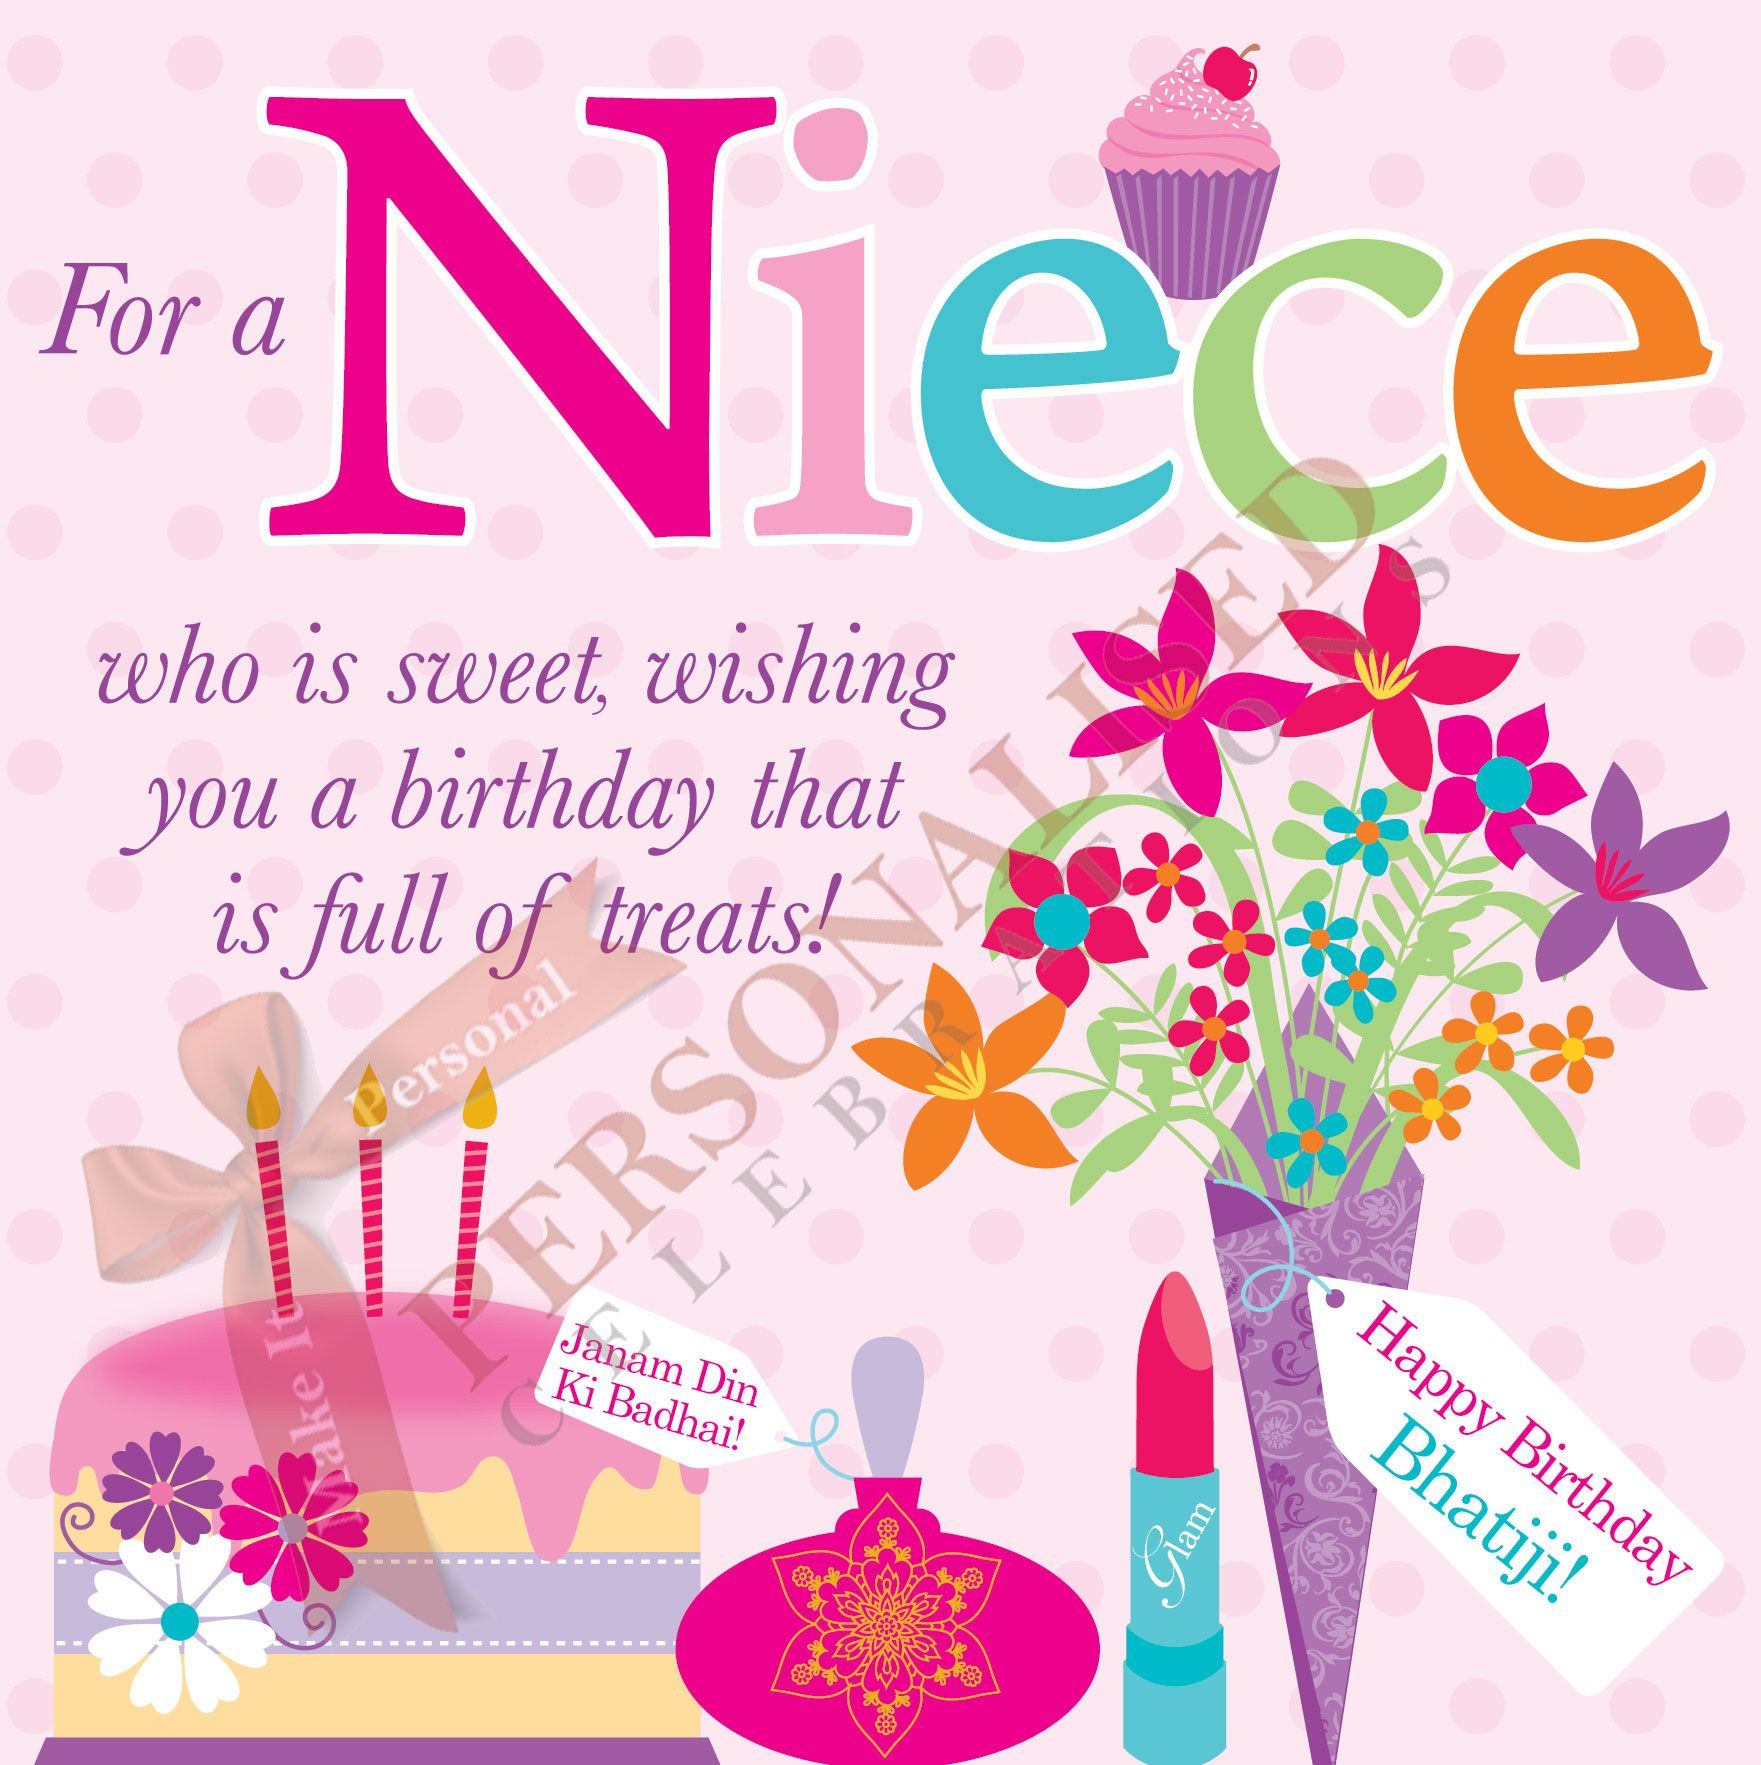 Niece birthday card buy this card online only 199 at http niece birthday card buy this card online only 199 at httppersonalisedcelebrations m4hsunfo Choice Image